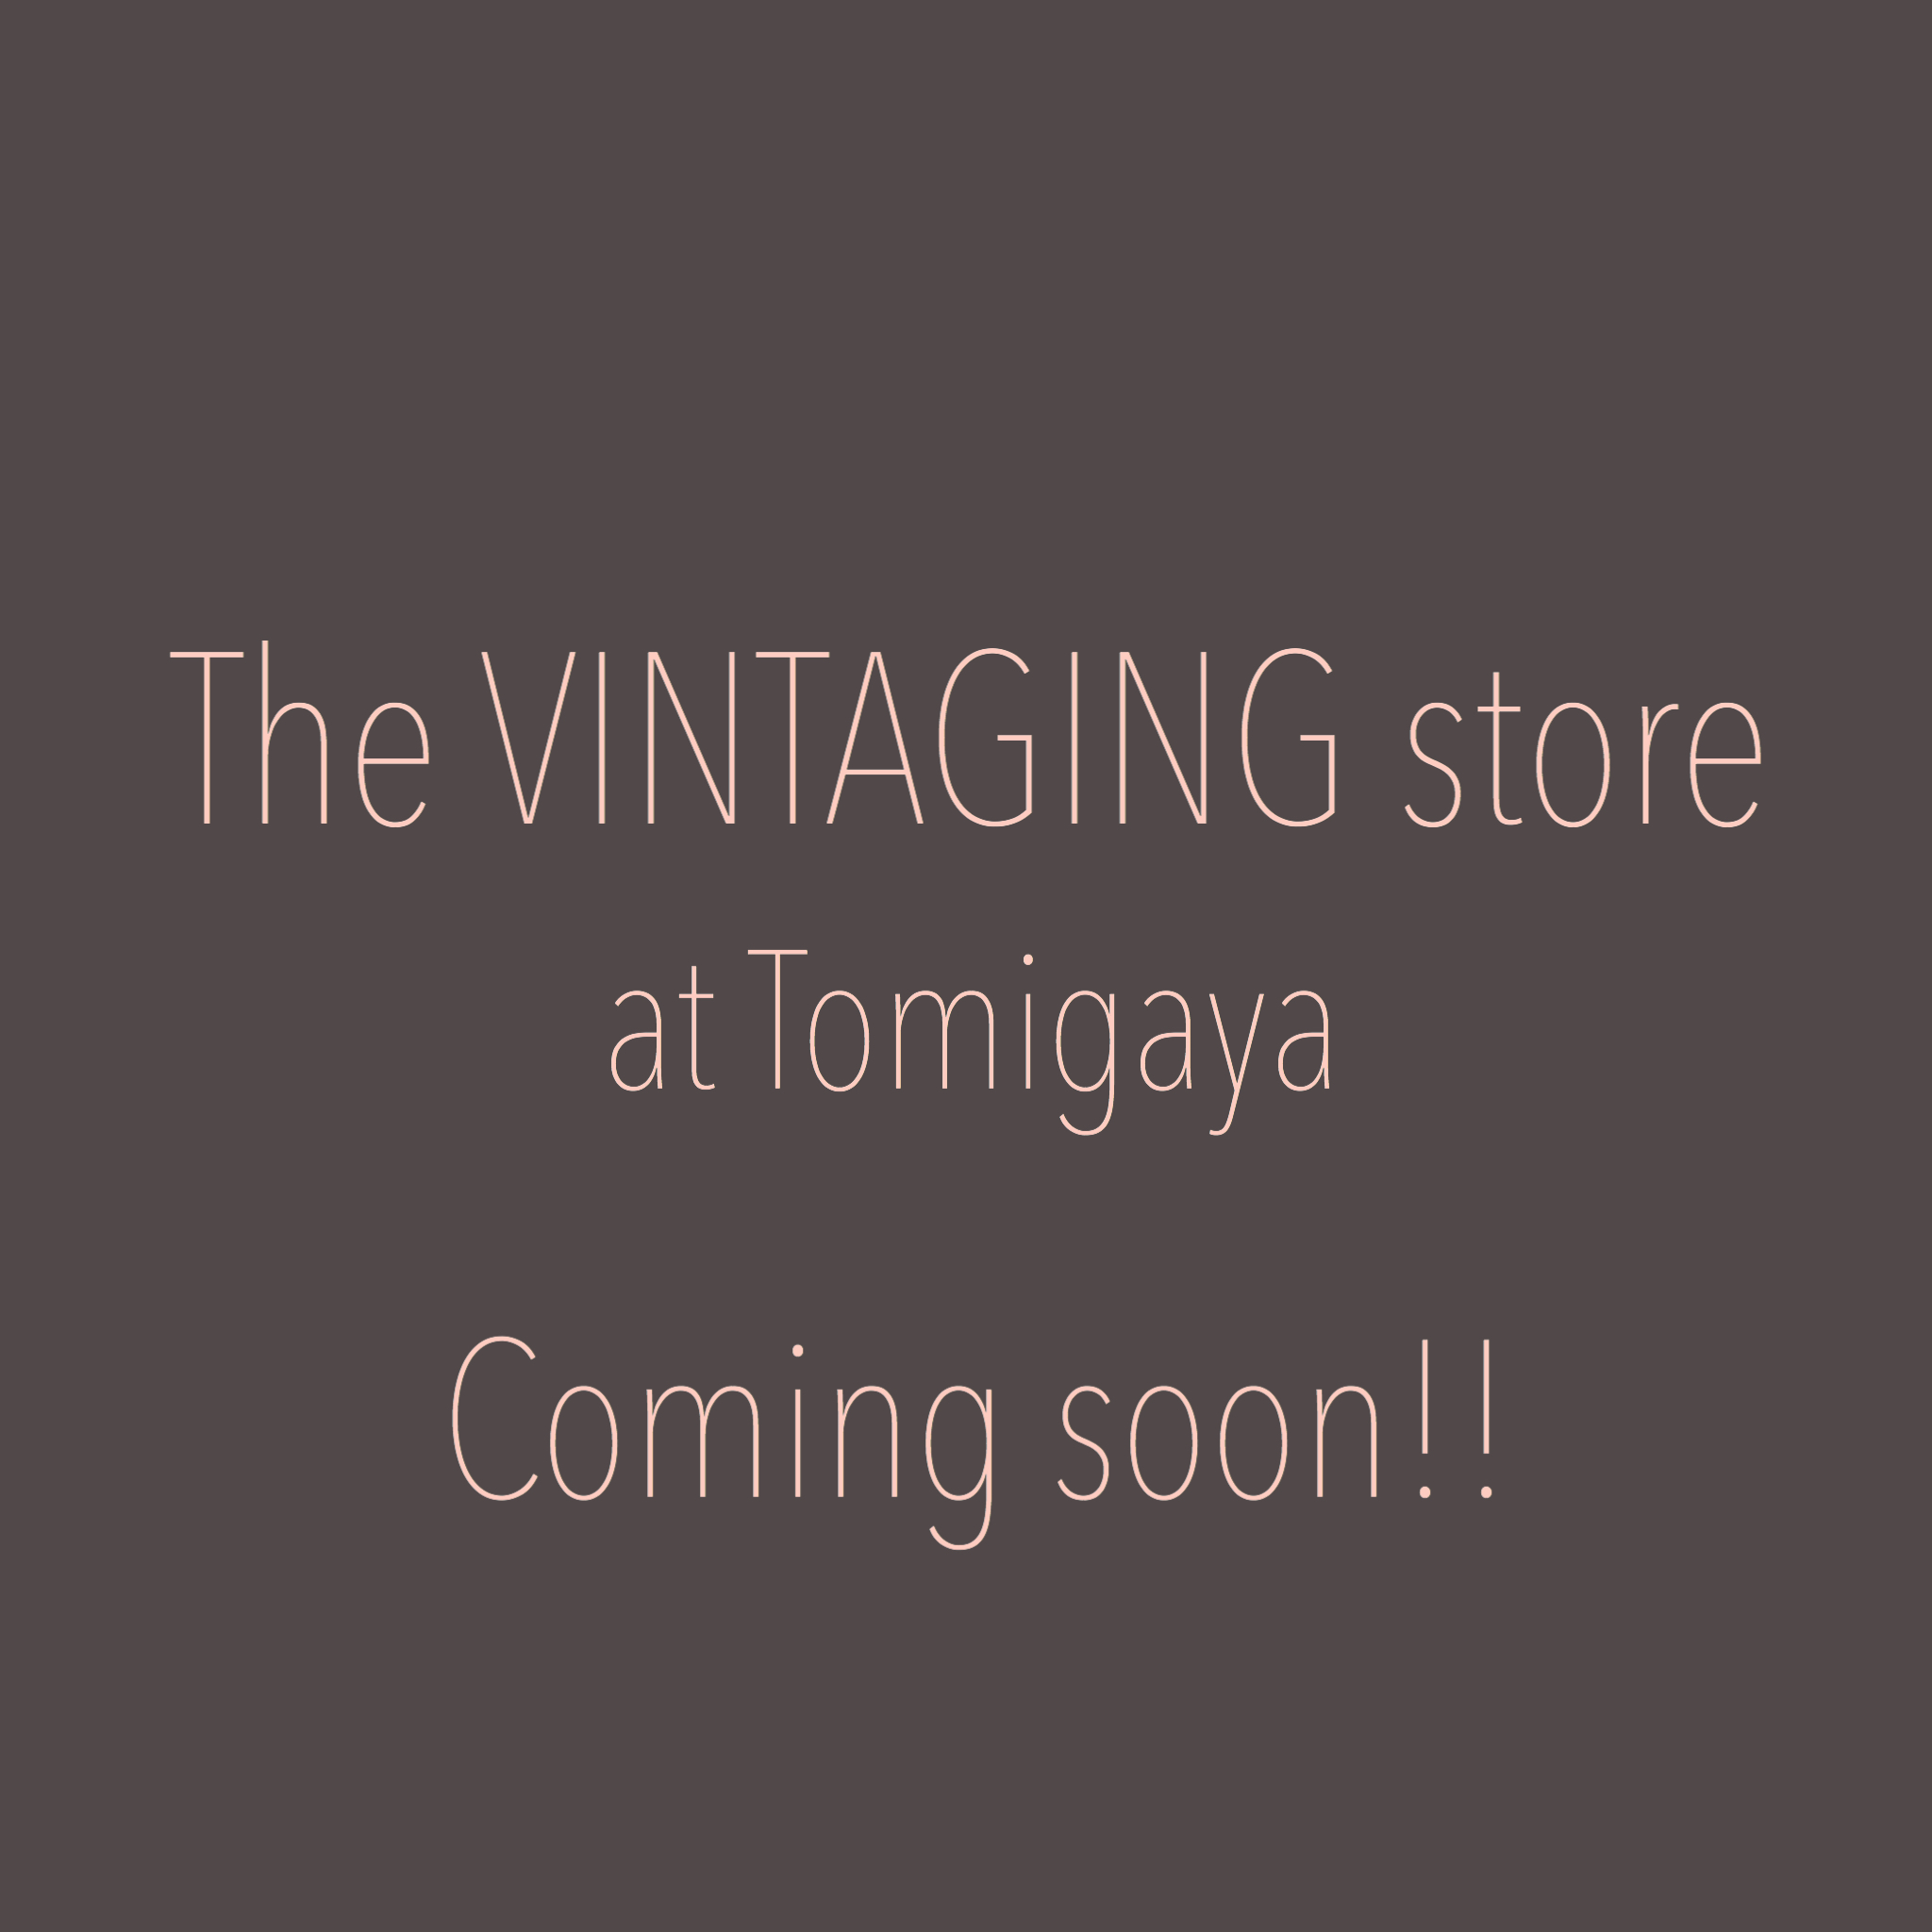 The VINTAGING store Coming soon!!